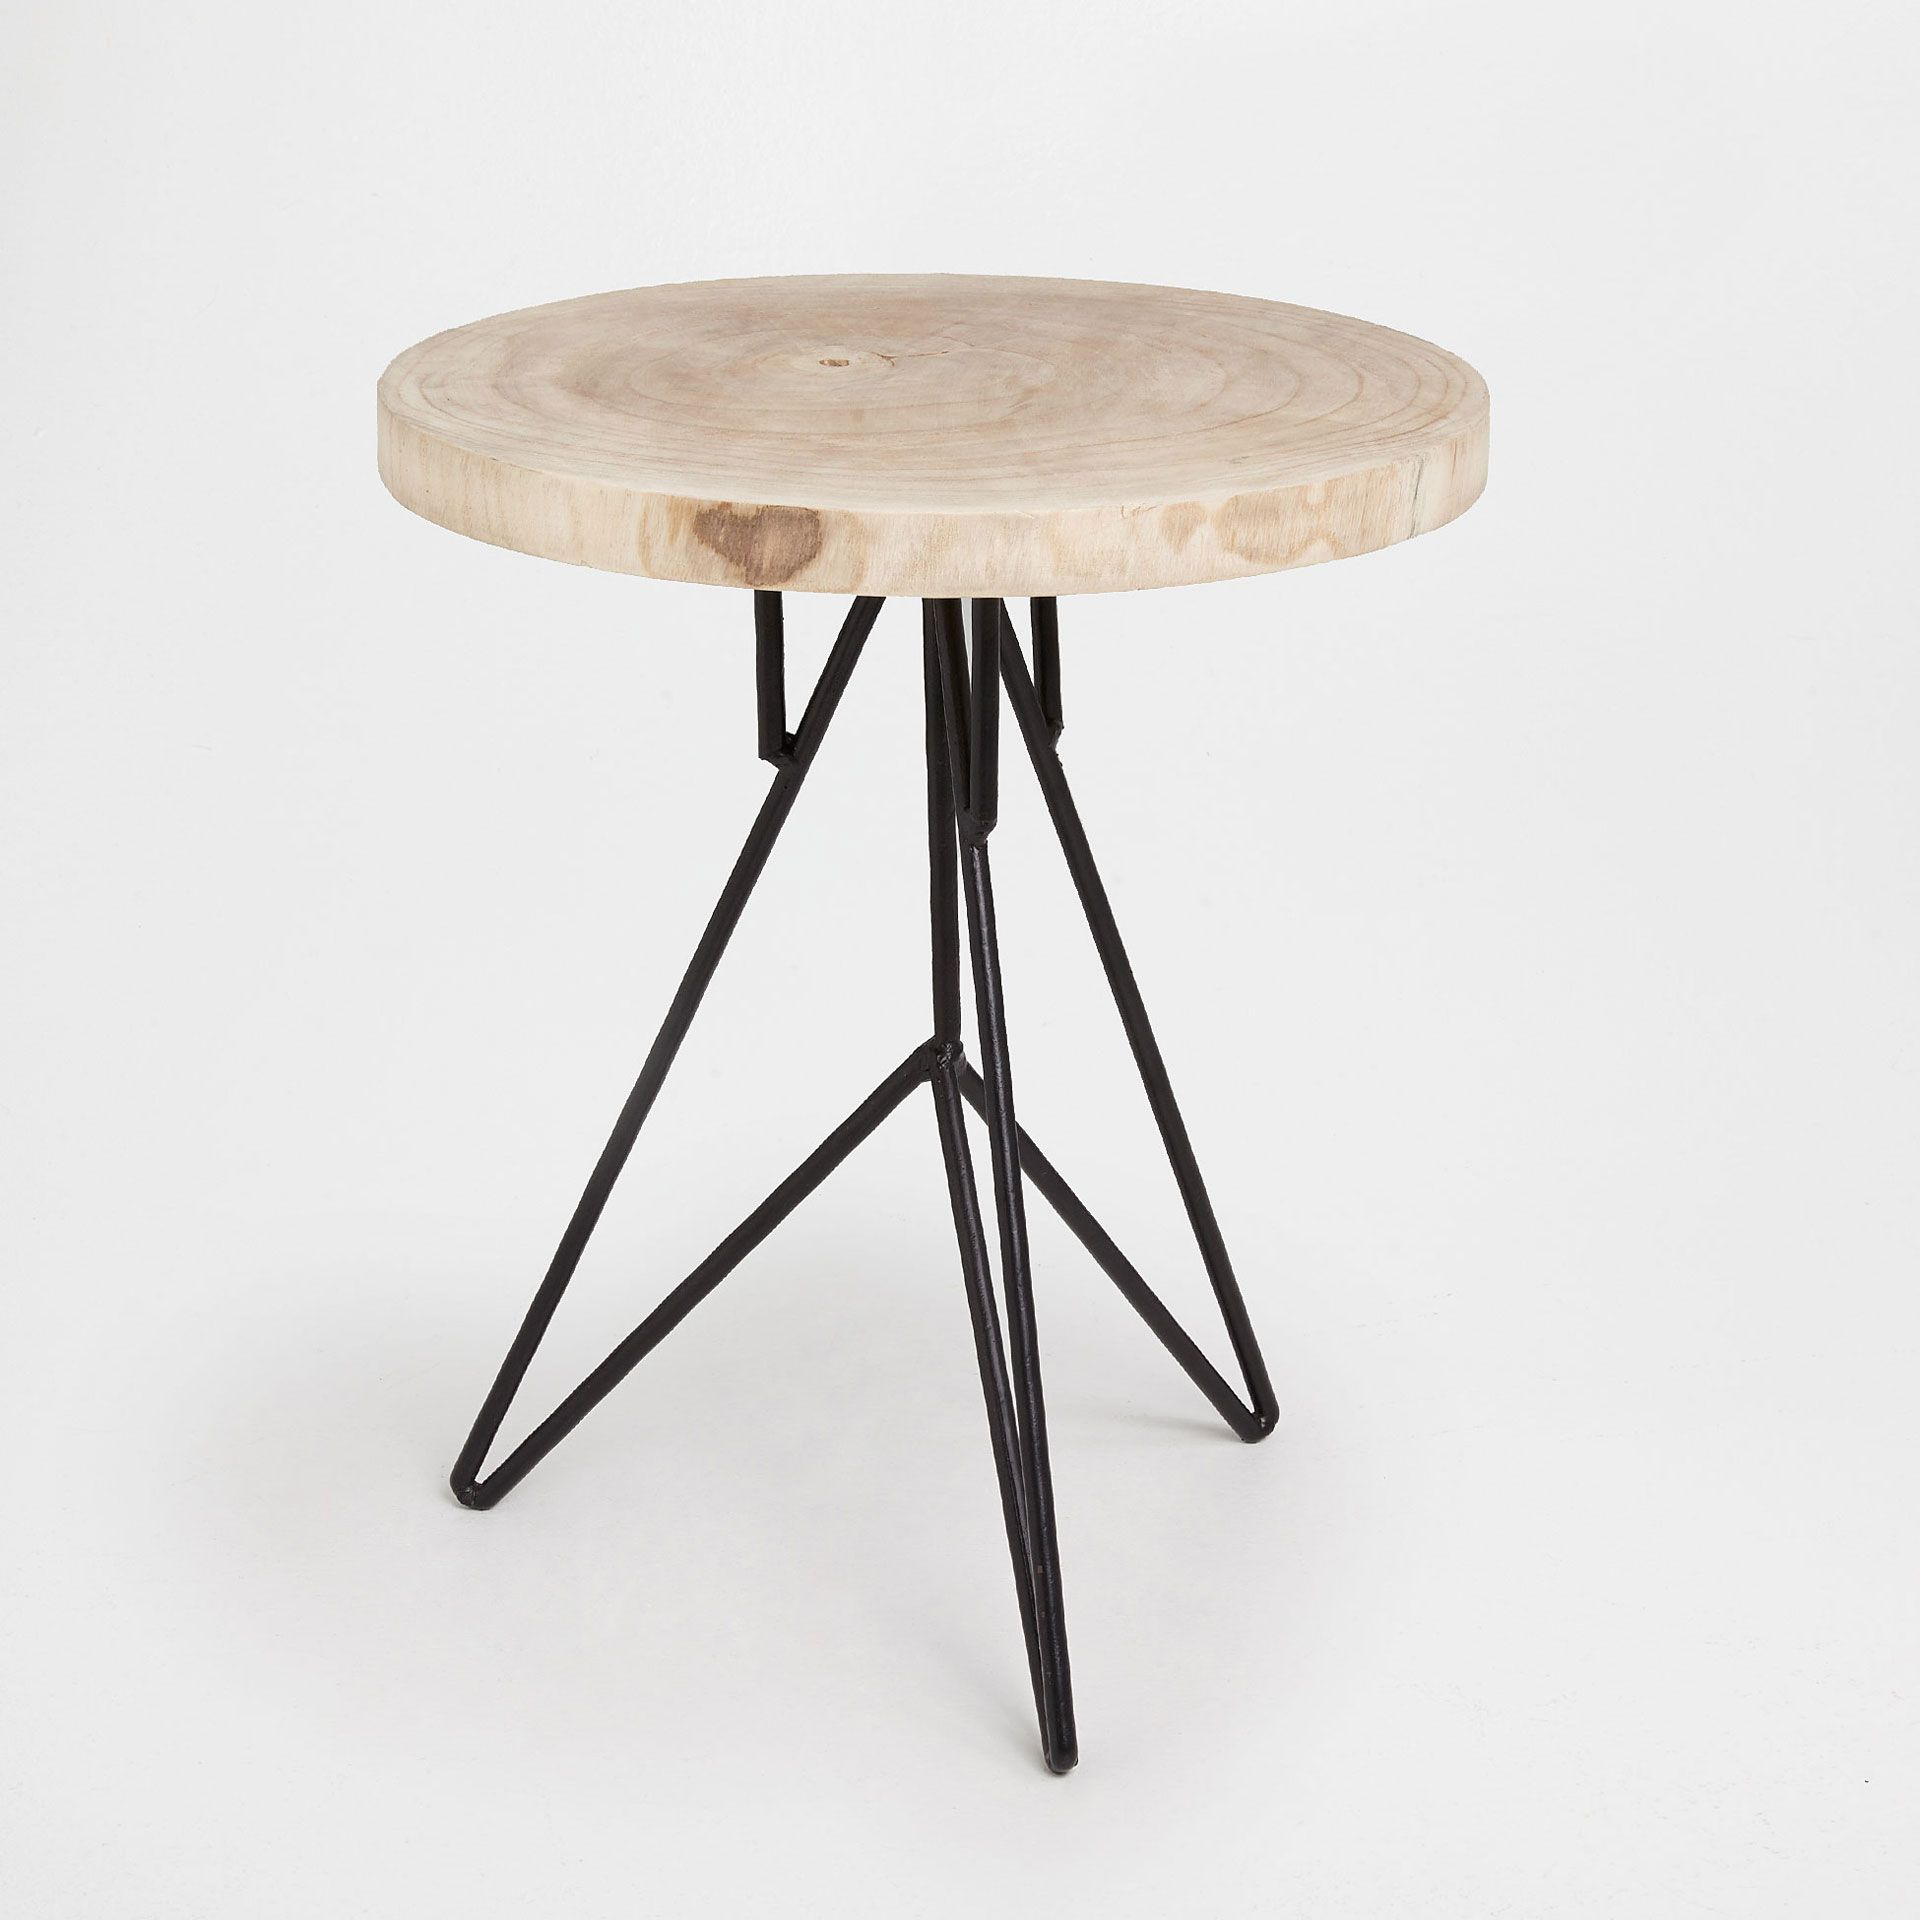 Marvelous Image 2 Of The Product Little Round Table With Iron Legs